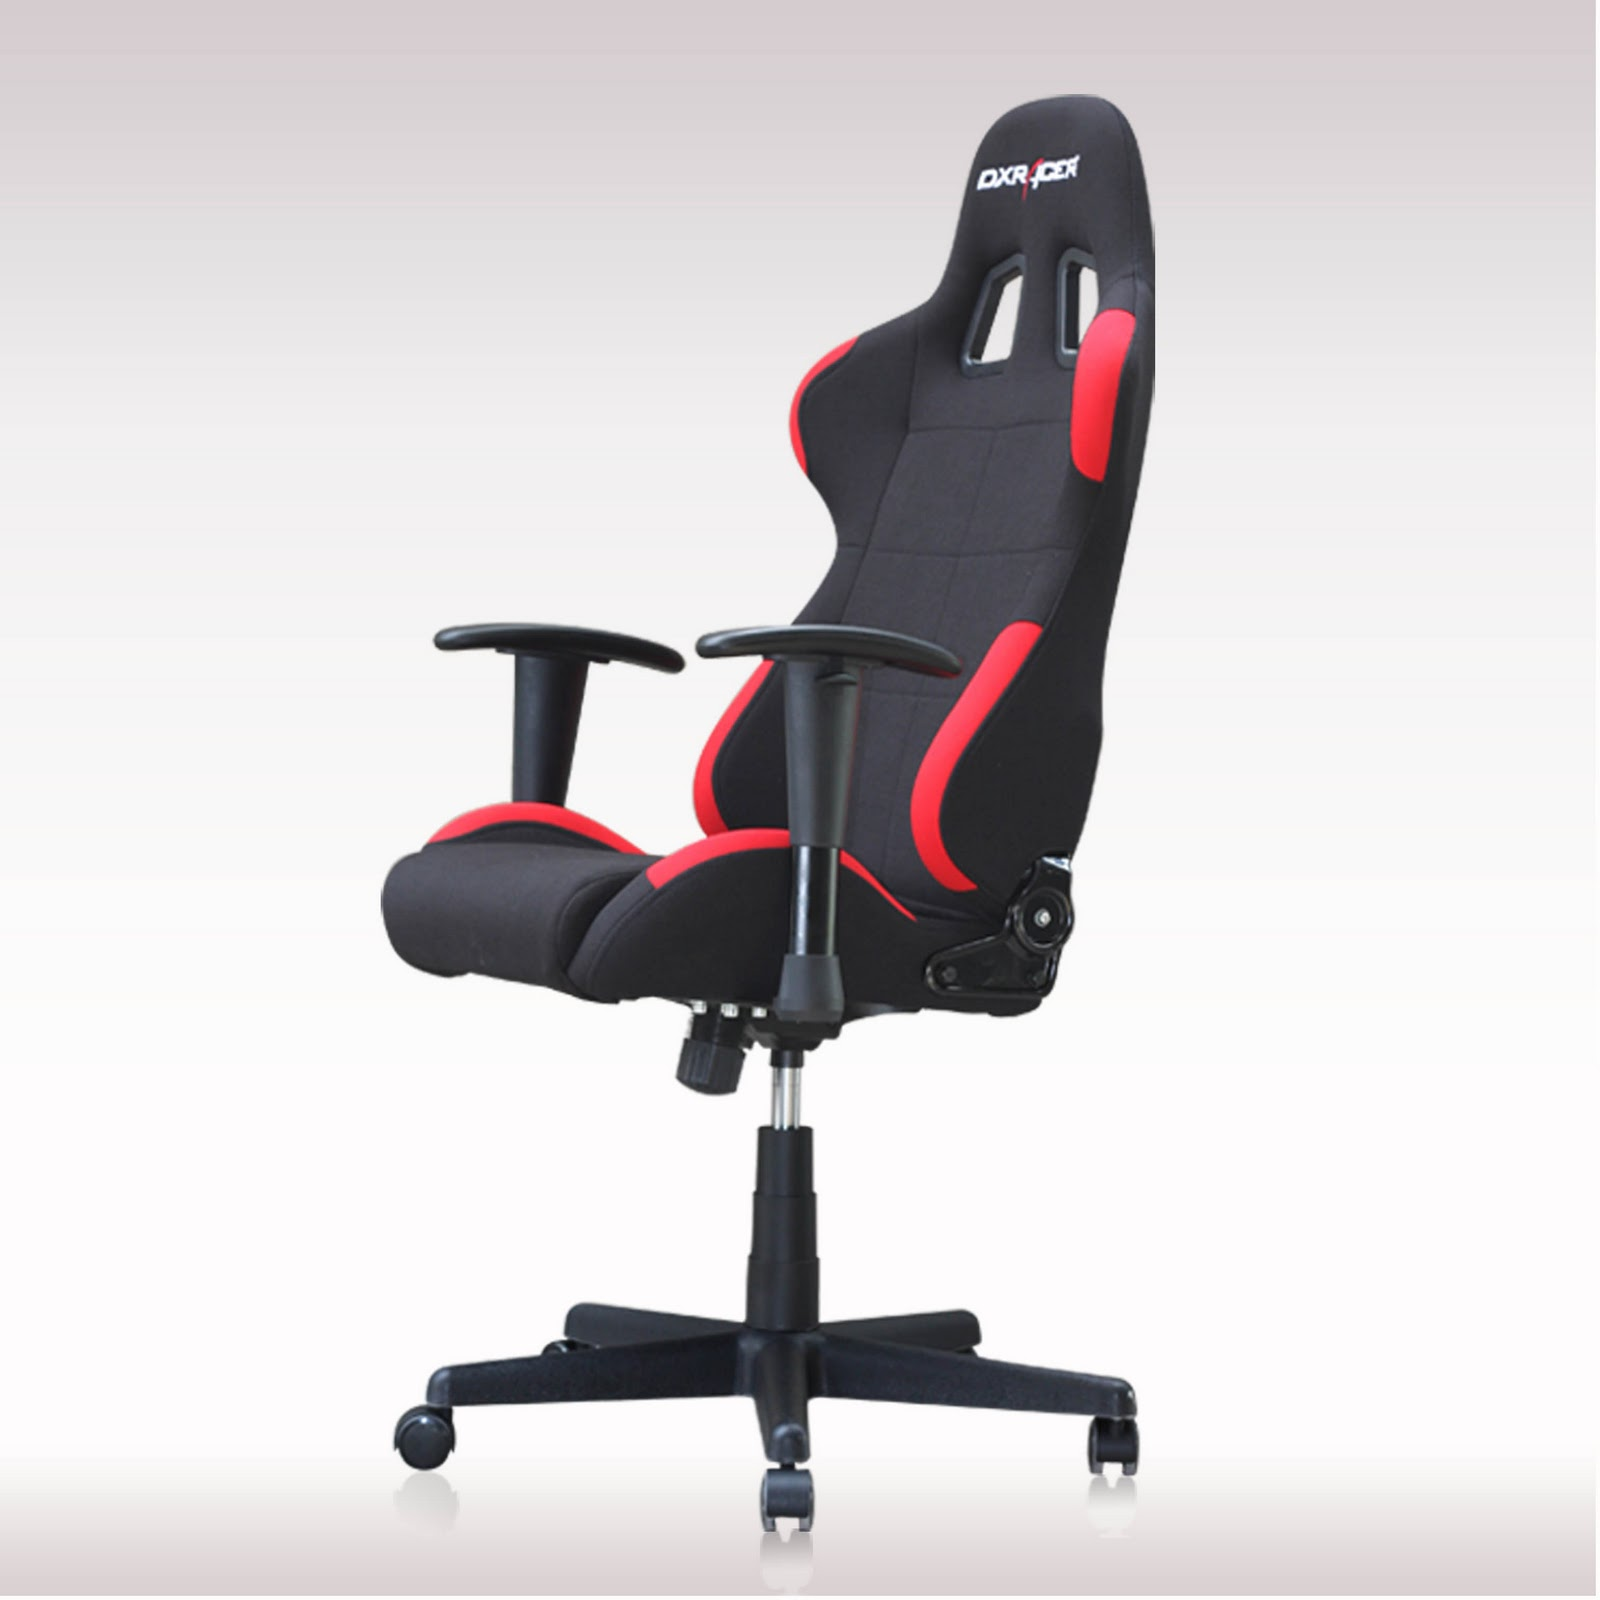 dxracer chair cover sitting area chairs ajshoppinghub